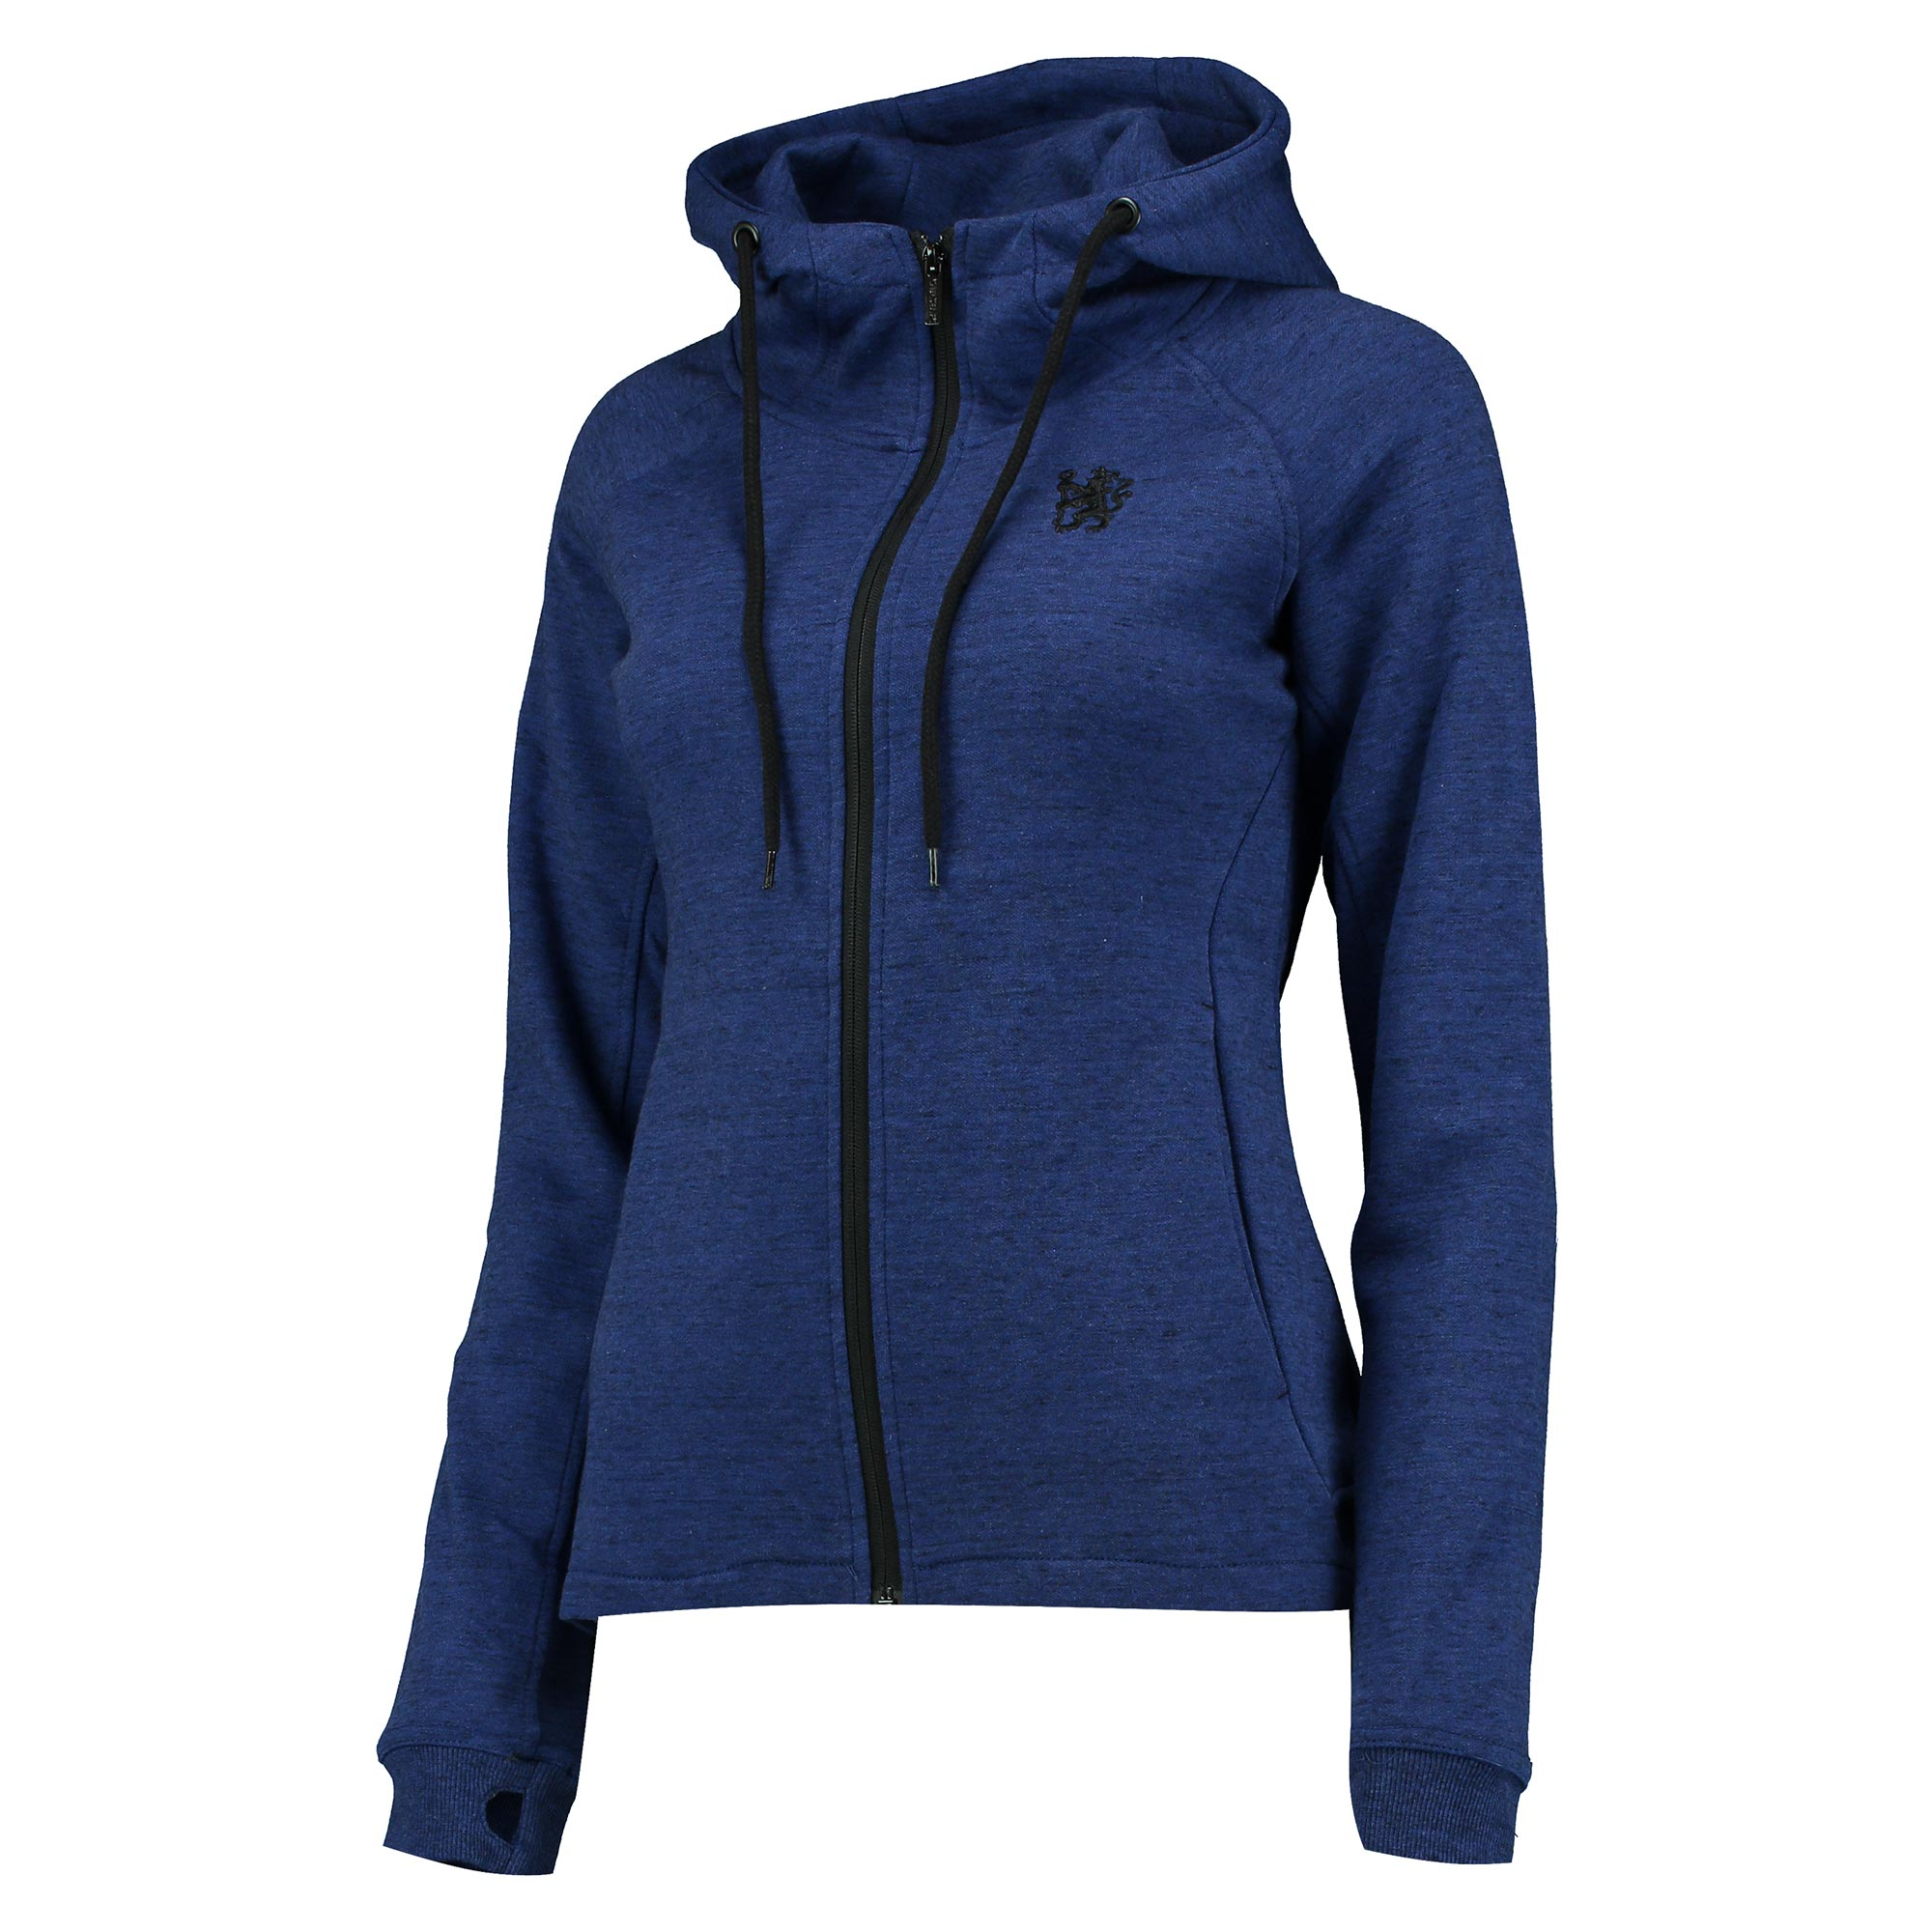 Chelsea Zip Through Hoodie - Royal/Black Marl - Womens